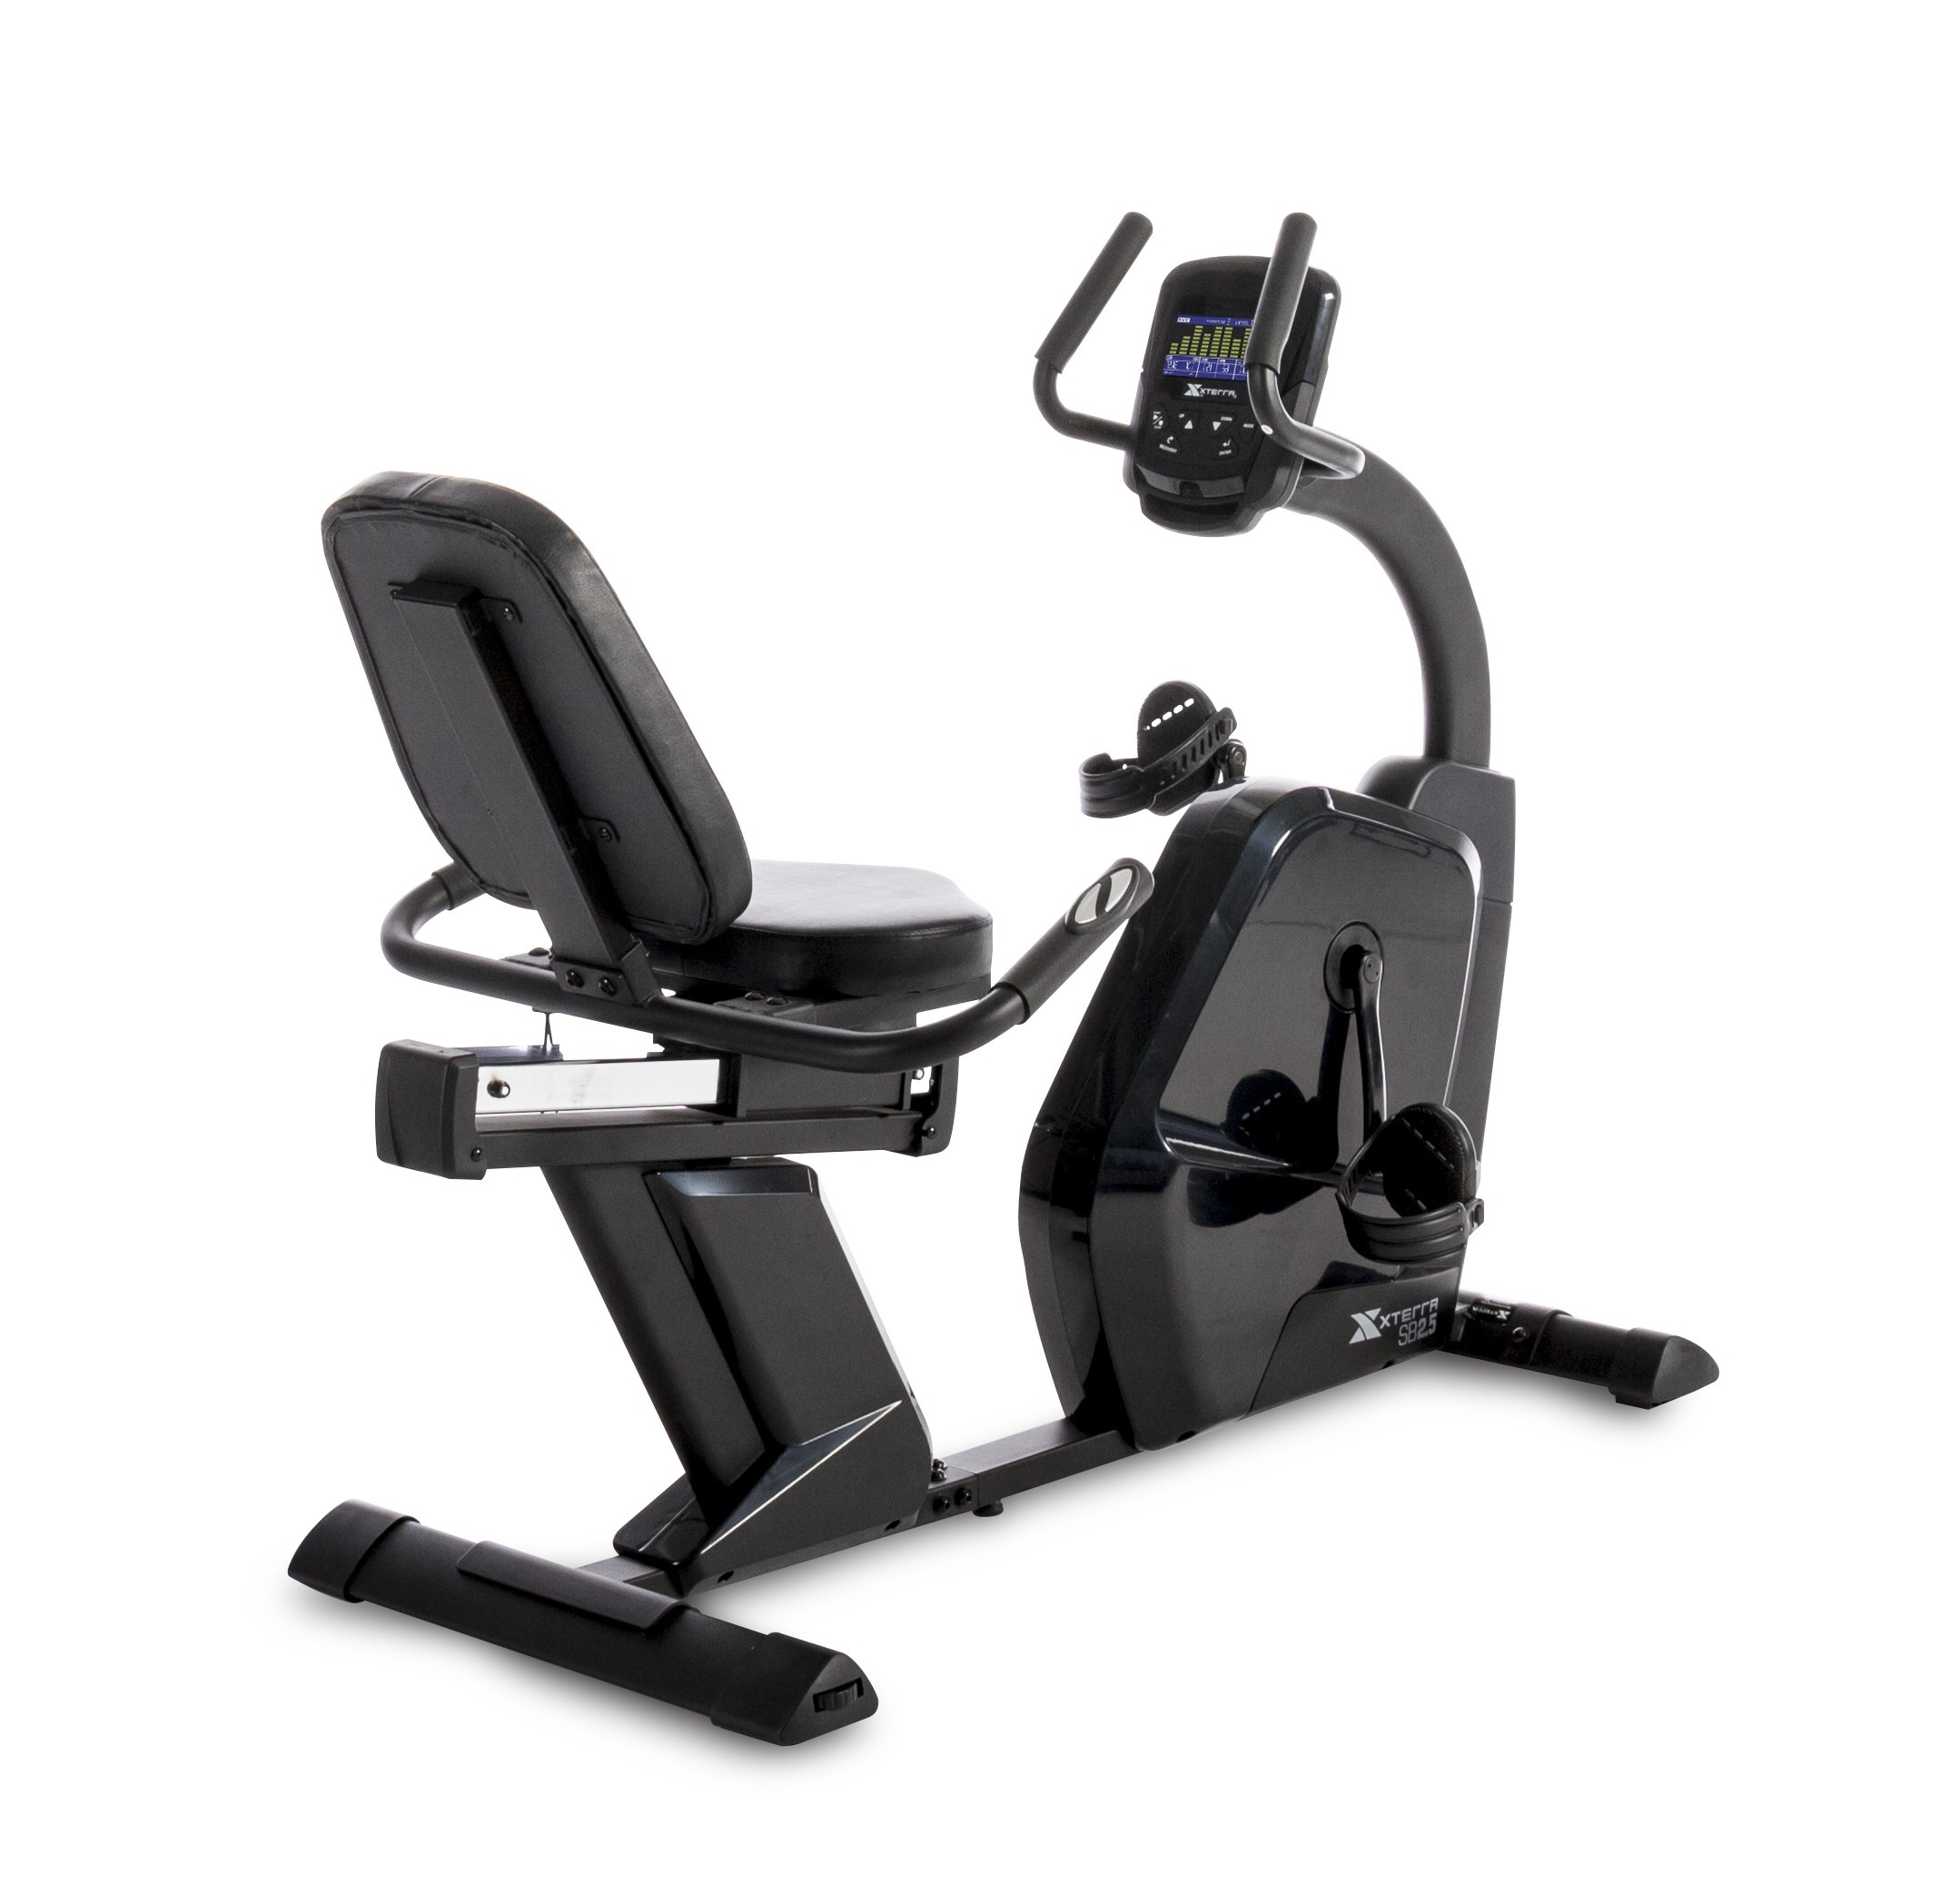 XTERRA Fitness SB2.5 Recumbent Bike with 24 Magnetic Resistance Levels